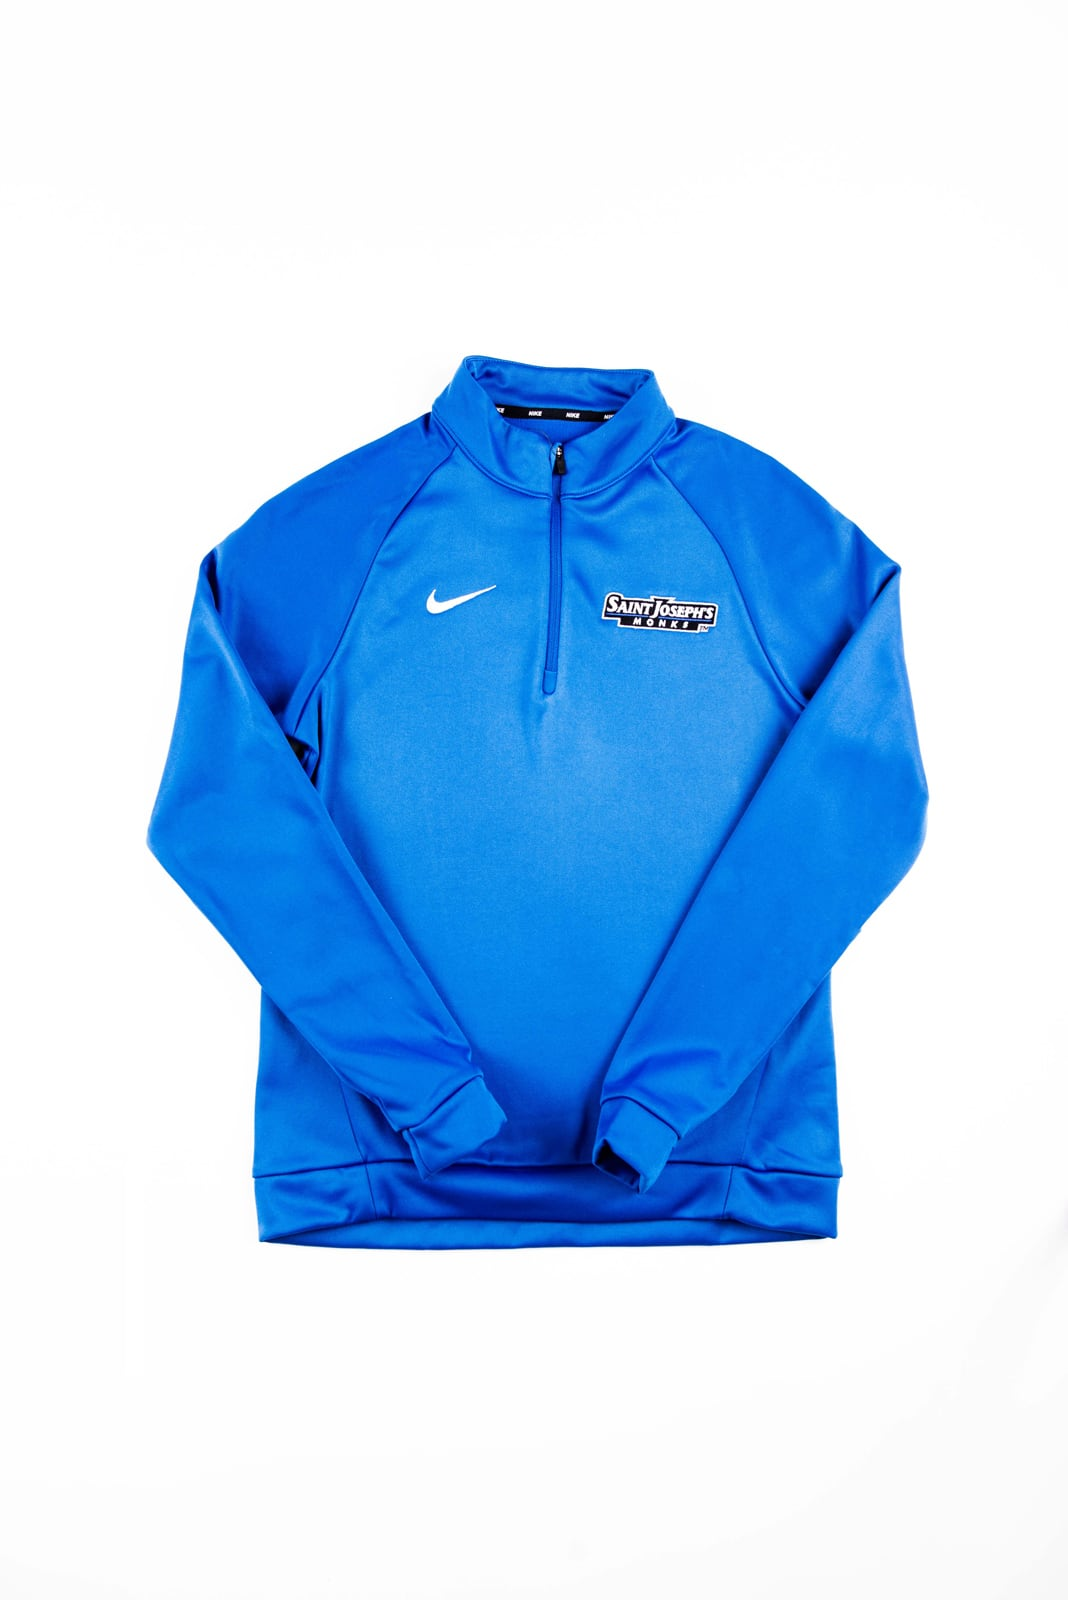 Blue Women's Nike Dri-Fit Training Quarter Zip